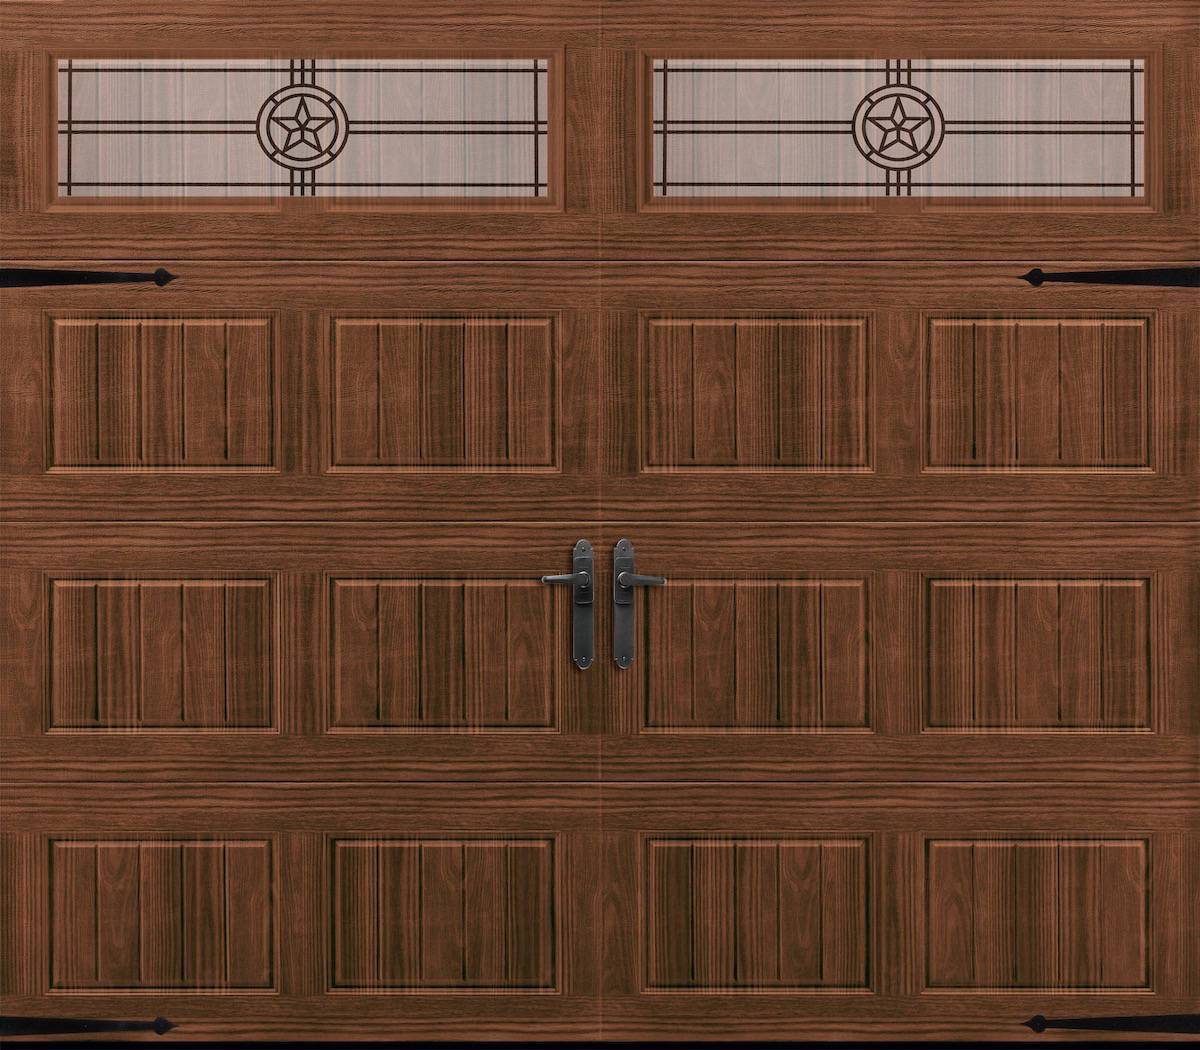 Hillcrest Collection - The Amarr Hillcrest Collection offers four carriage house designs in 7 colors and 3 woodgrain choices.8x7 starting at $659.4916x7 starting at $968.38